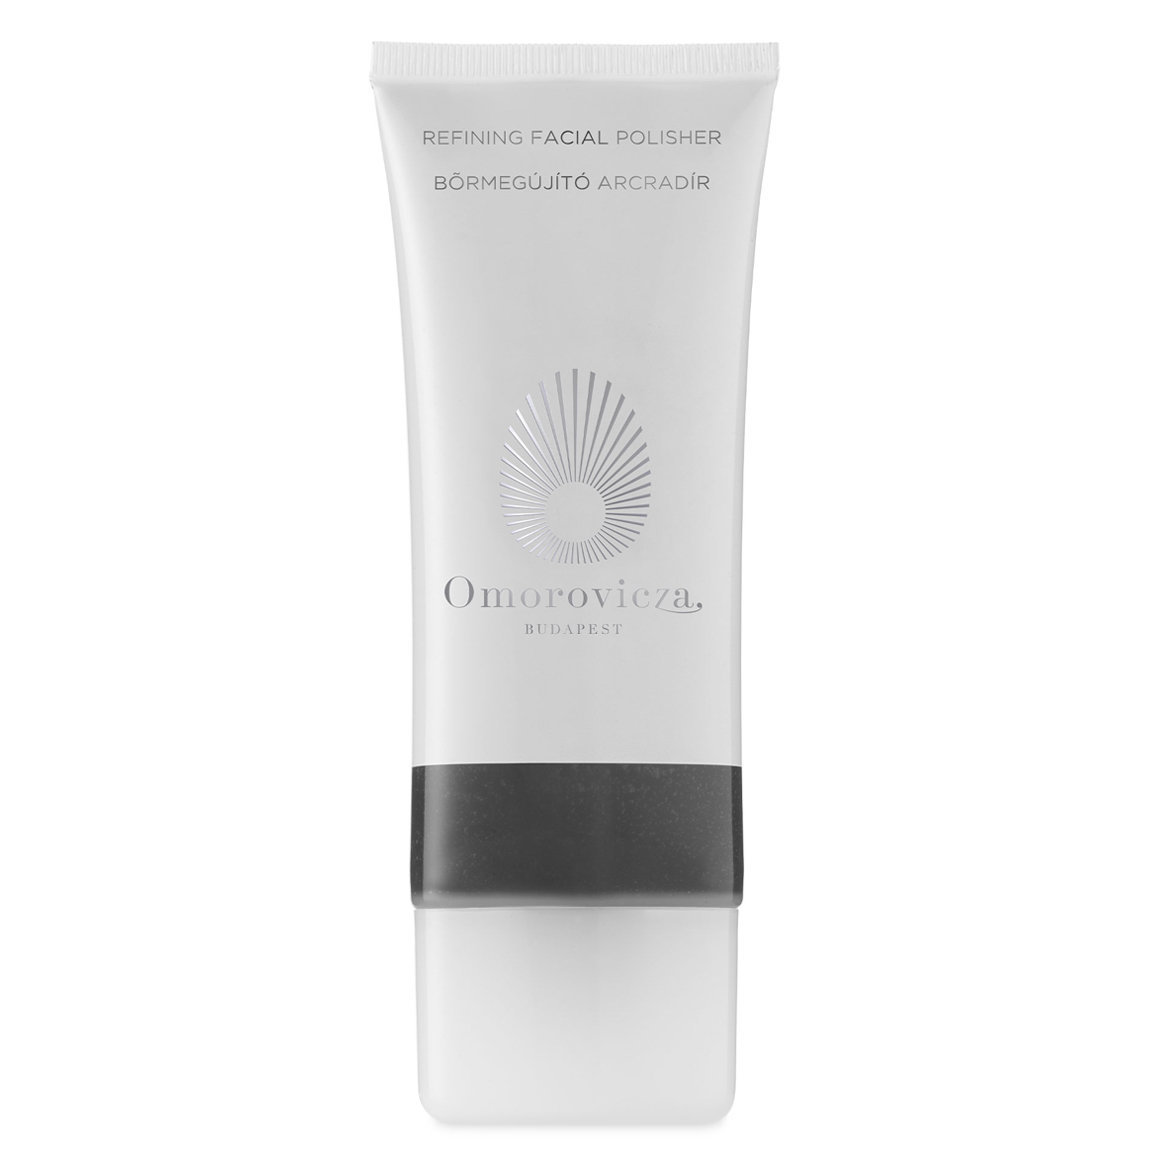 Omorovicza Refining Facial Polisher alternative view 1 - product swatch.